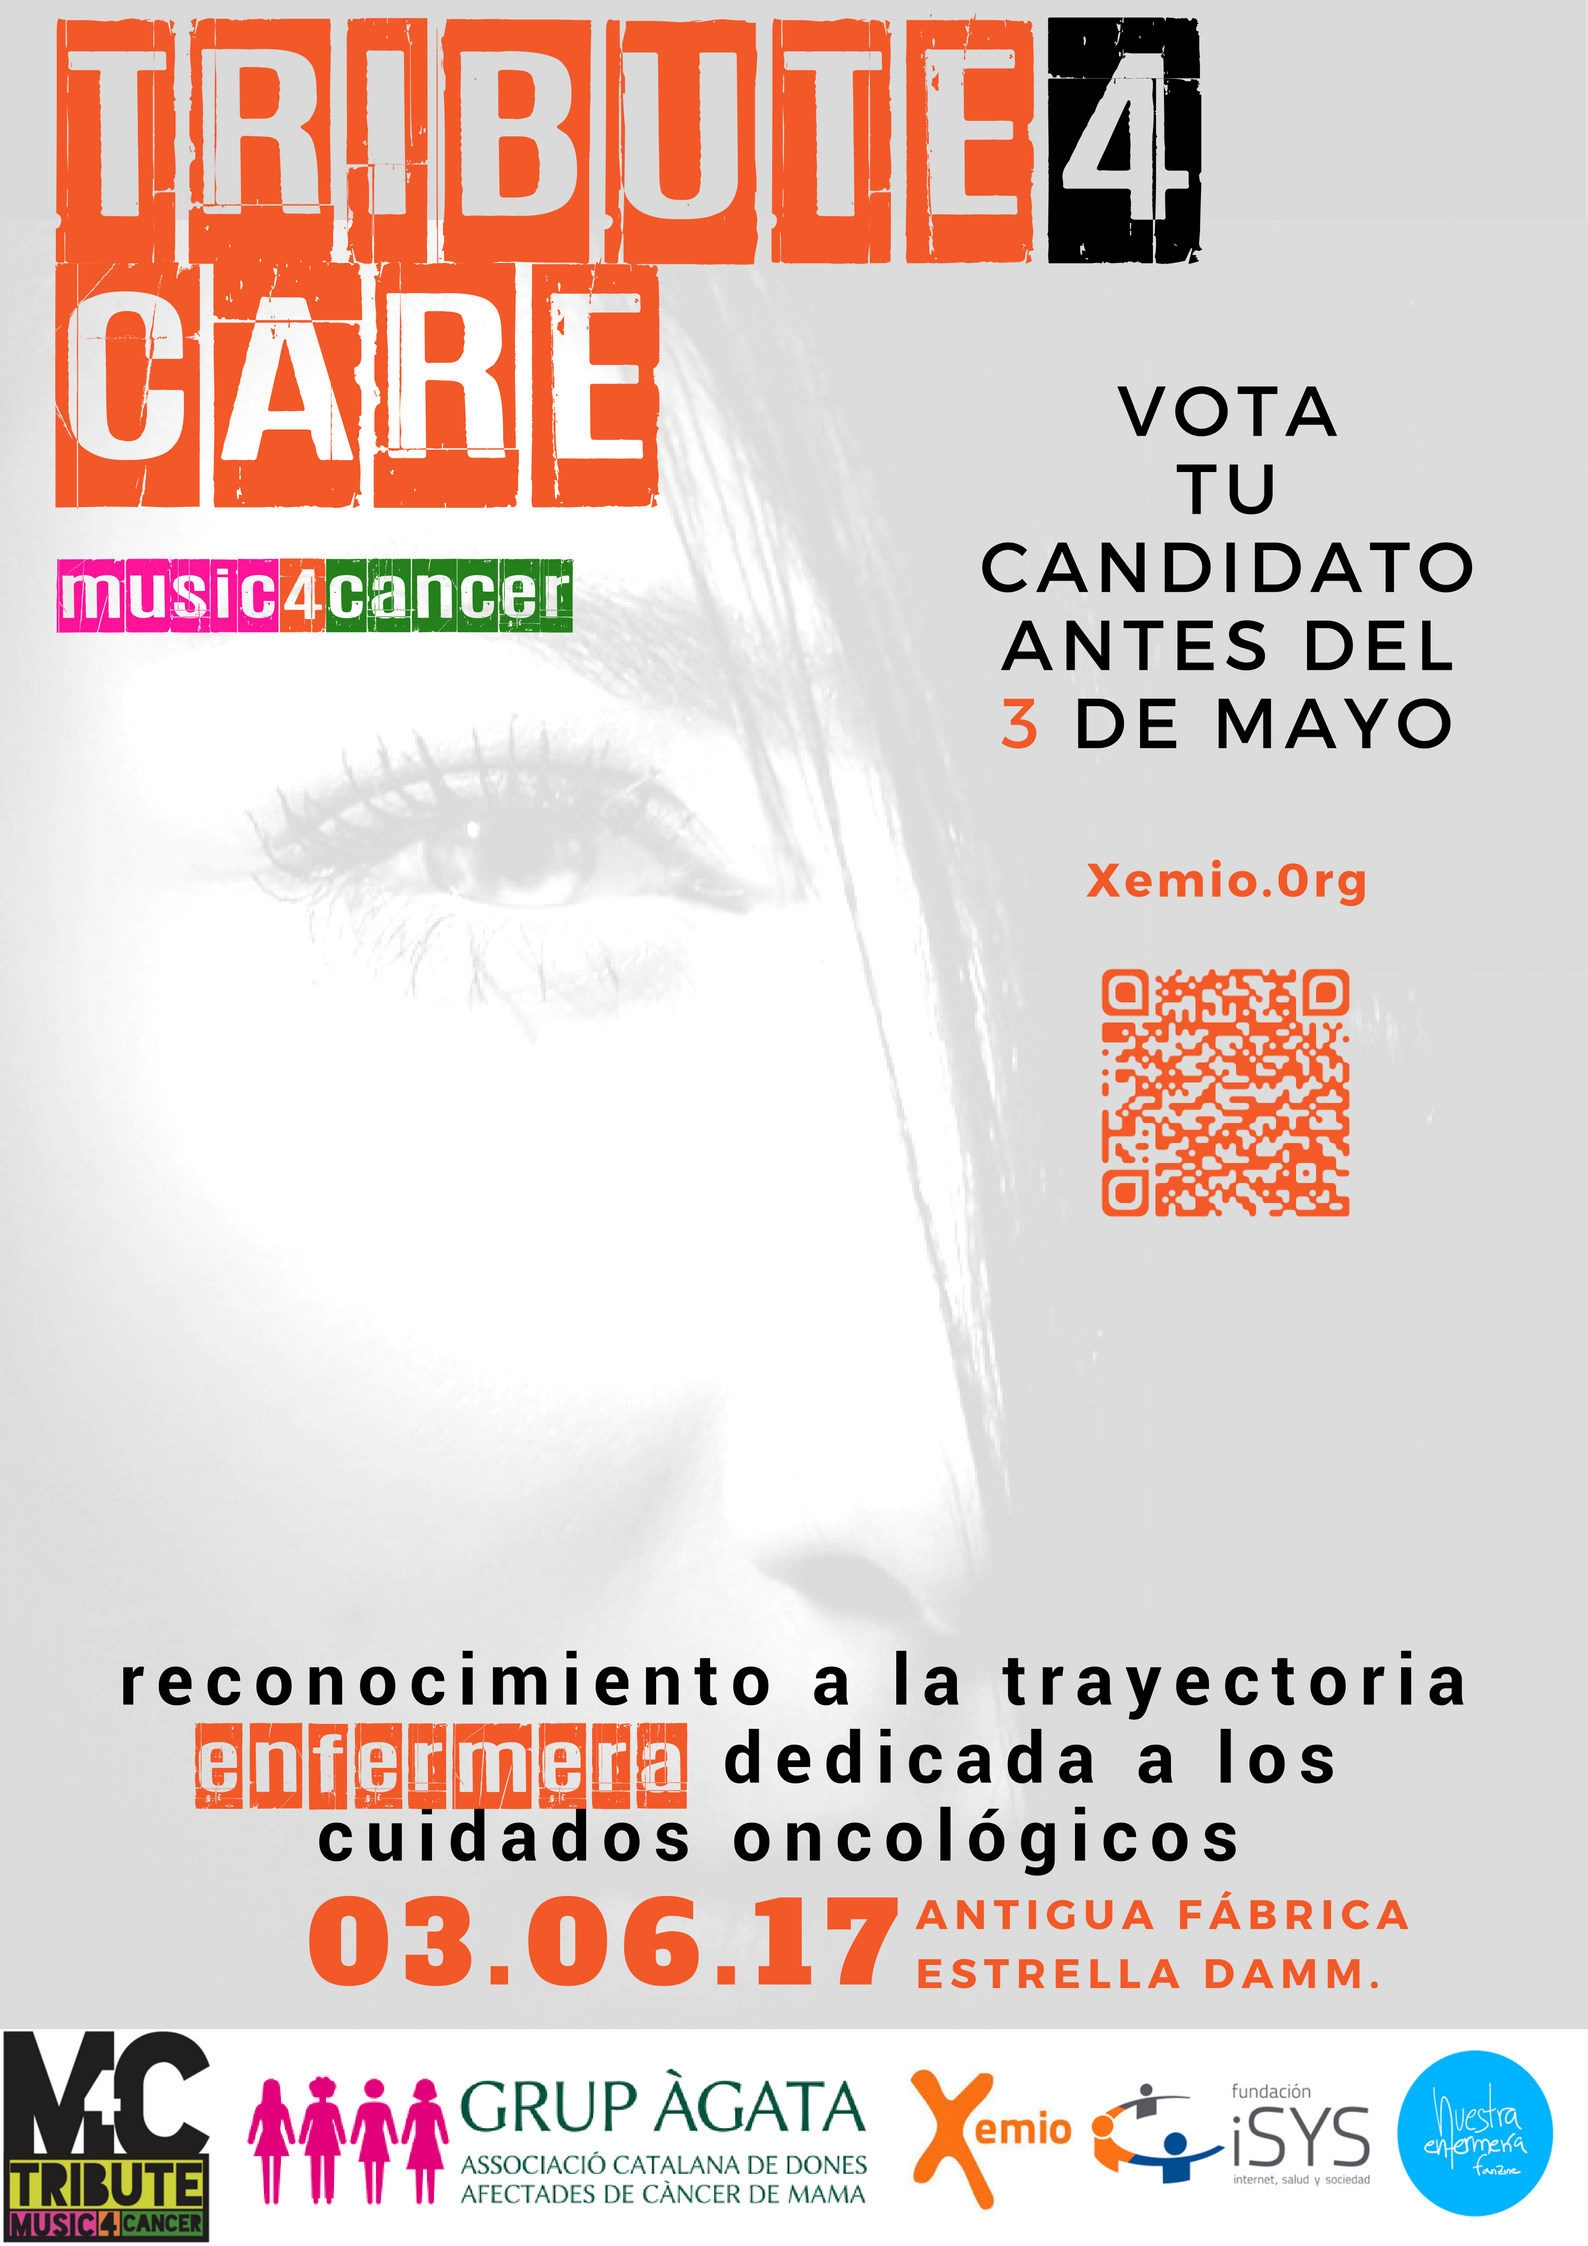 Colaboración con Tribute 4 Care en M4C Tribute